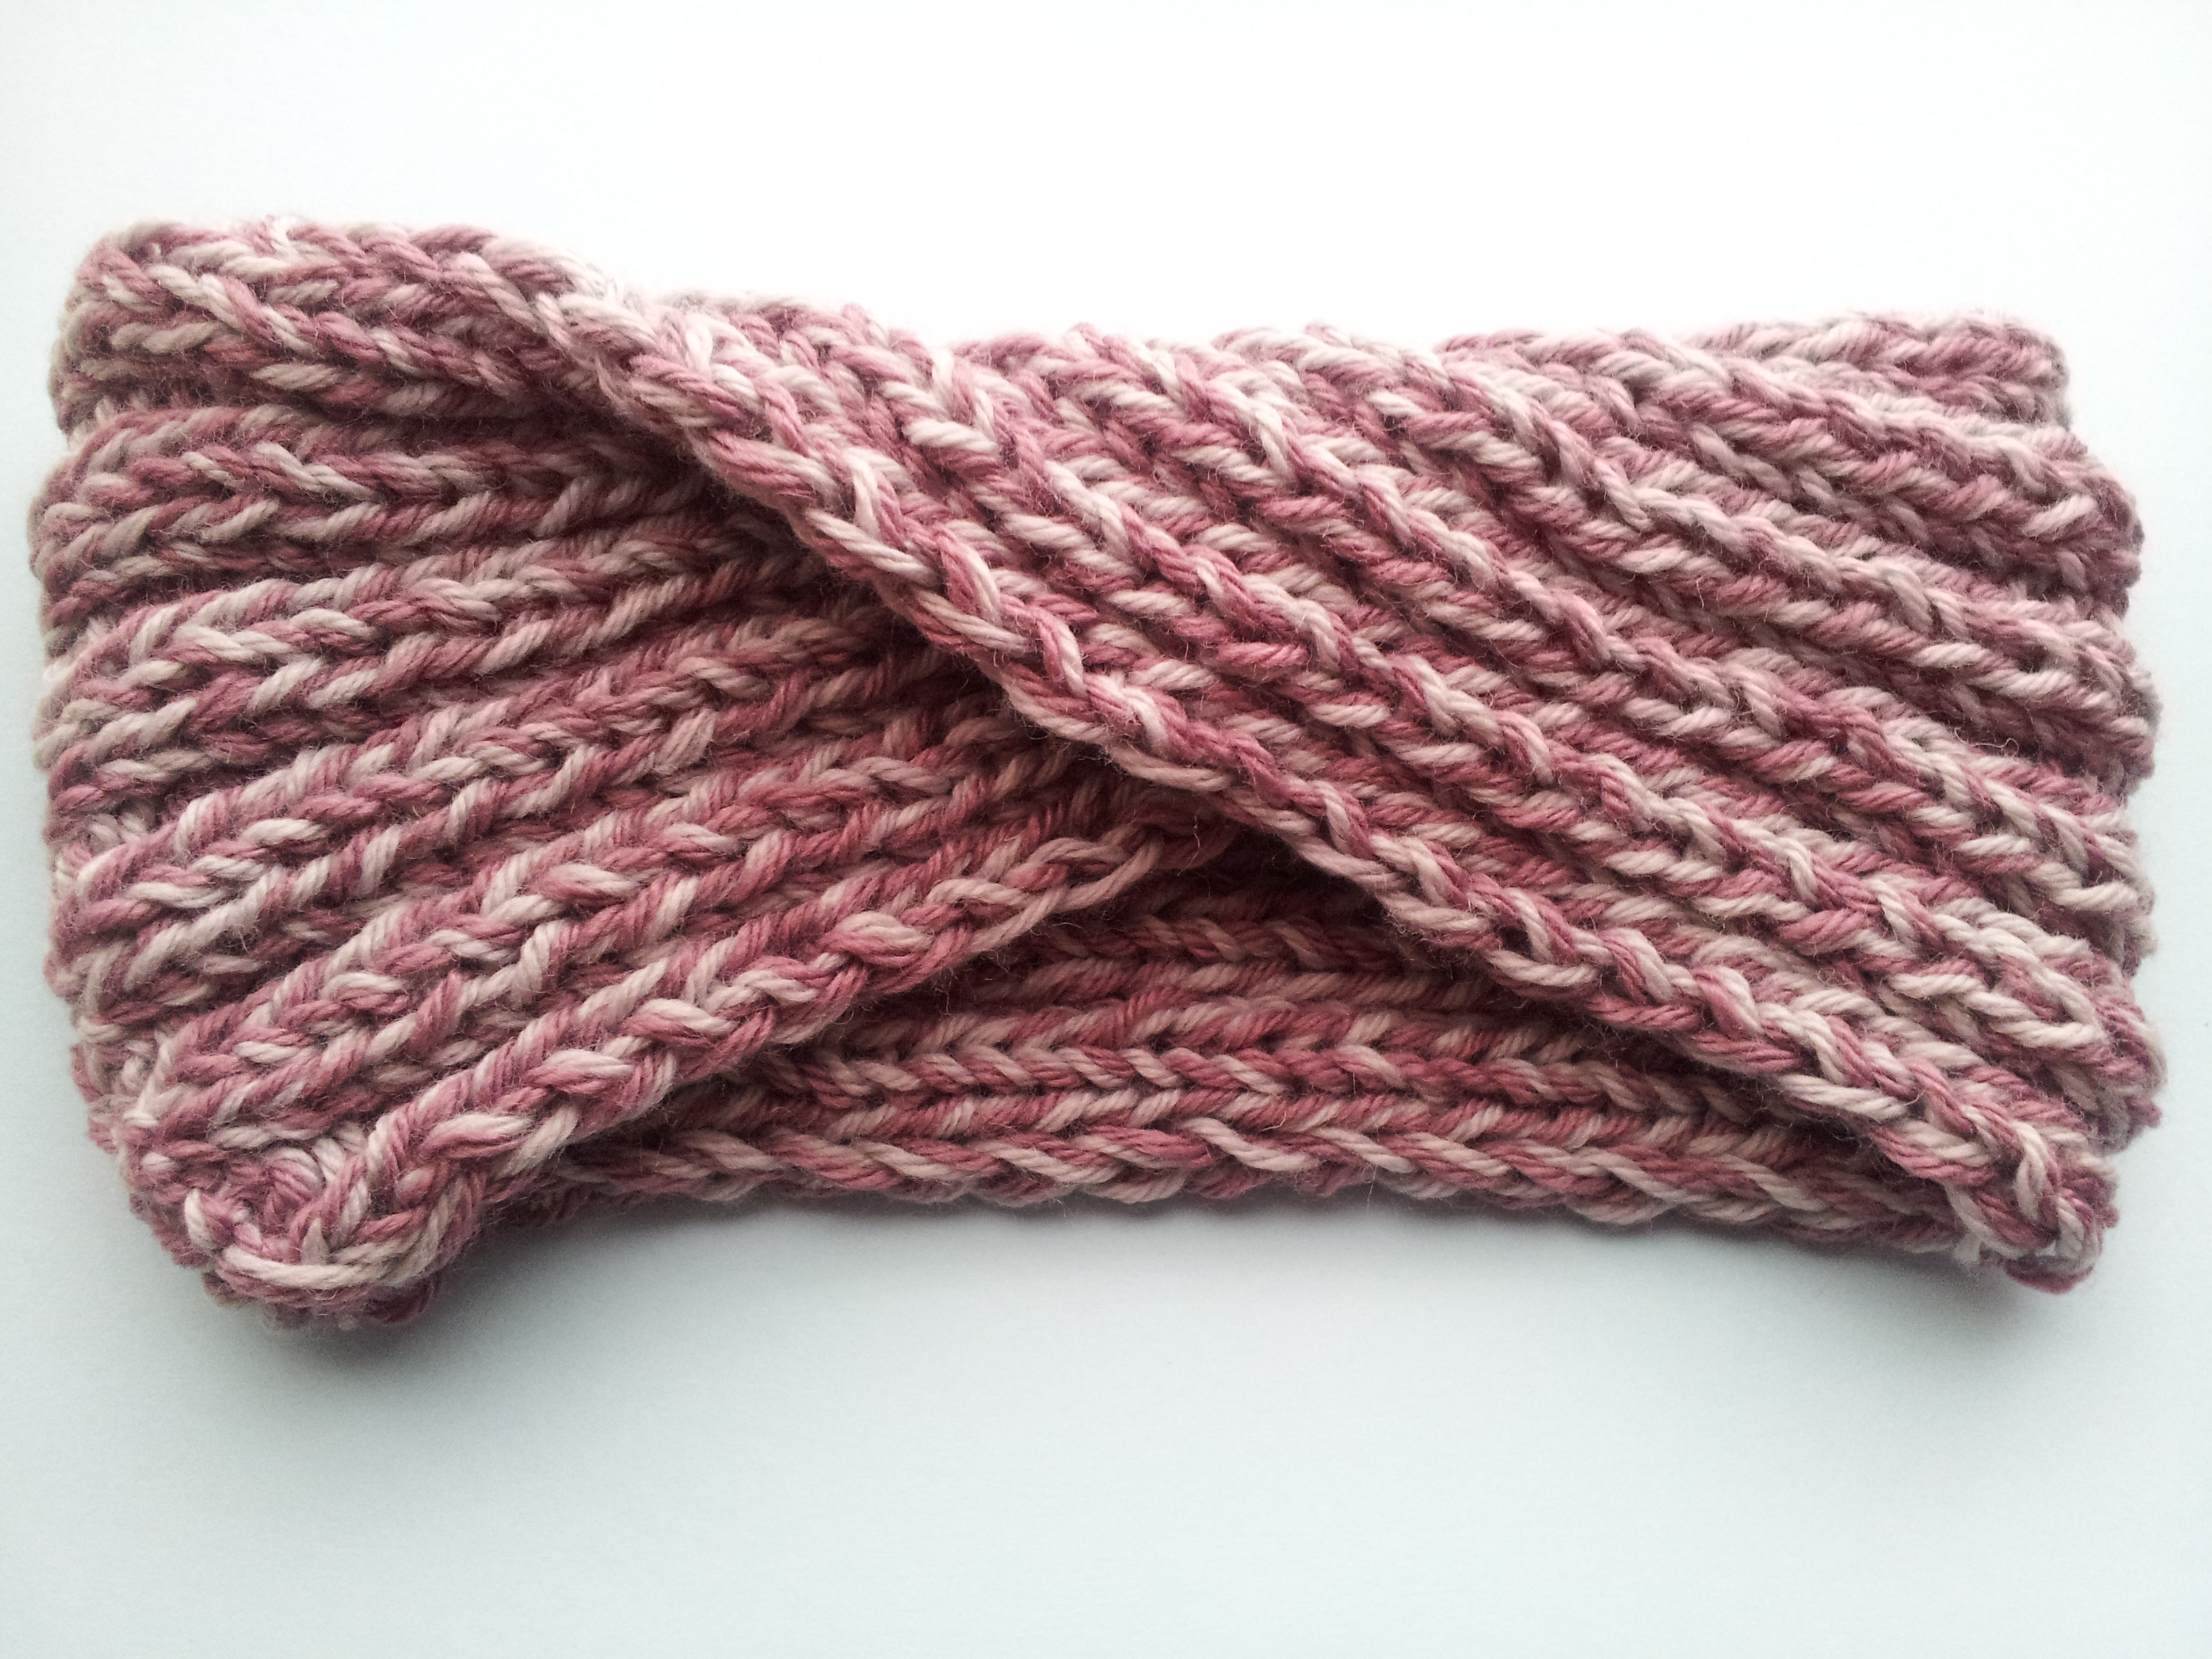 63.- Turbante en punto elástico / Turban Headband in Rib Stitch - Yo ...